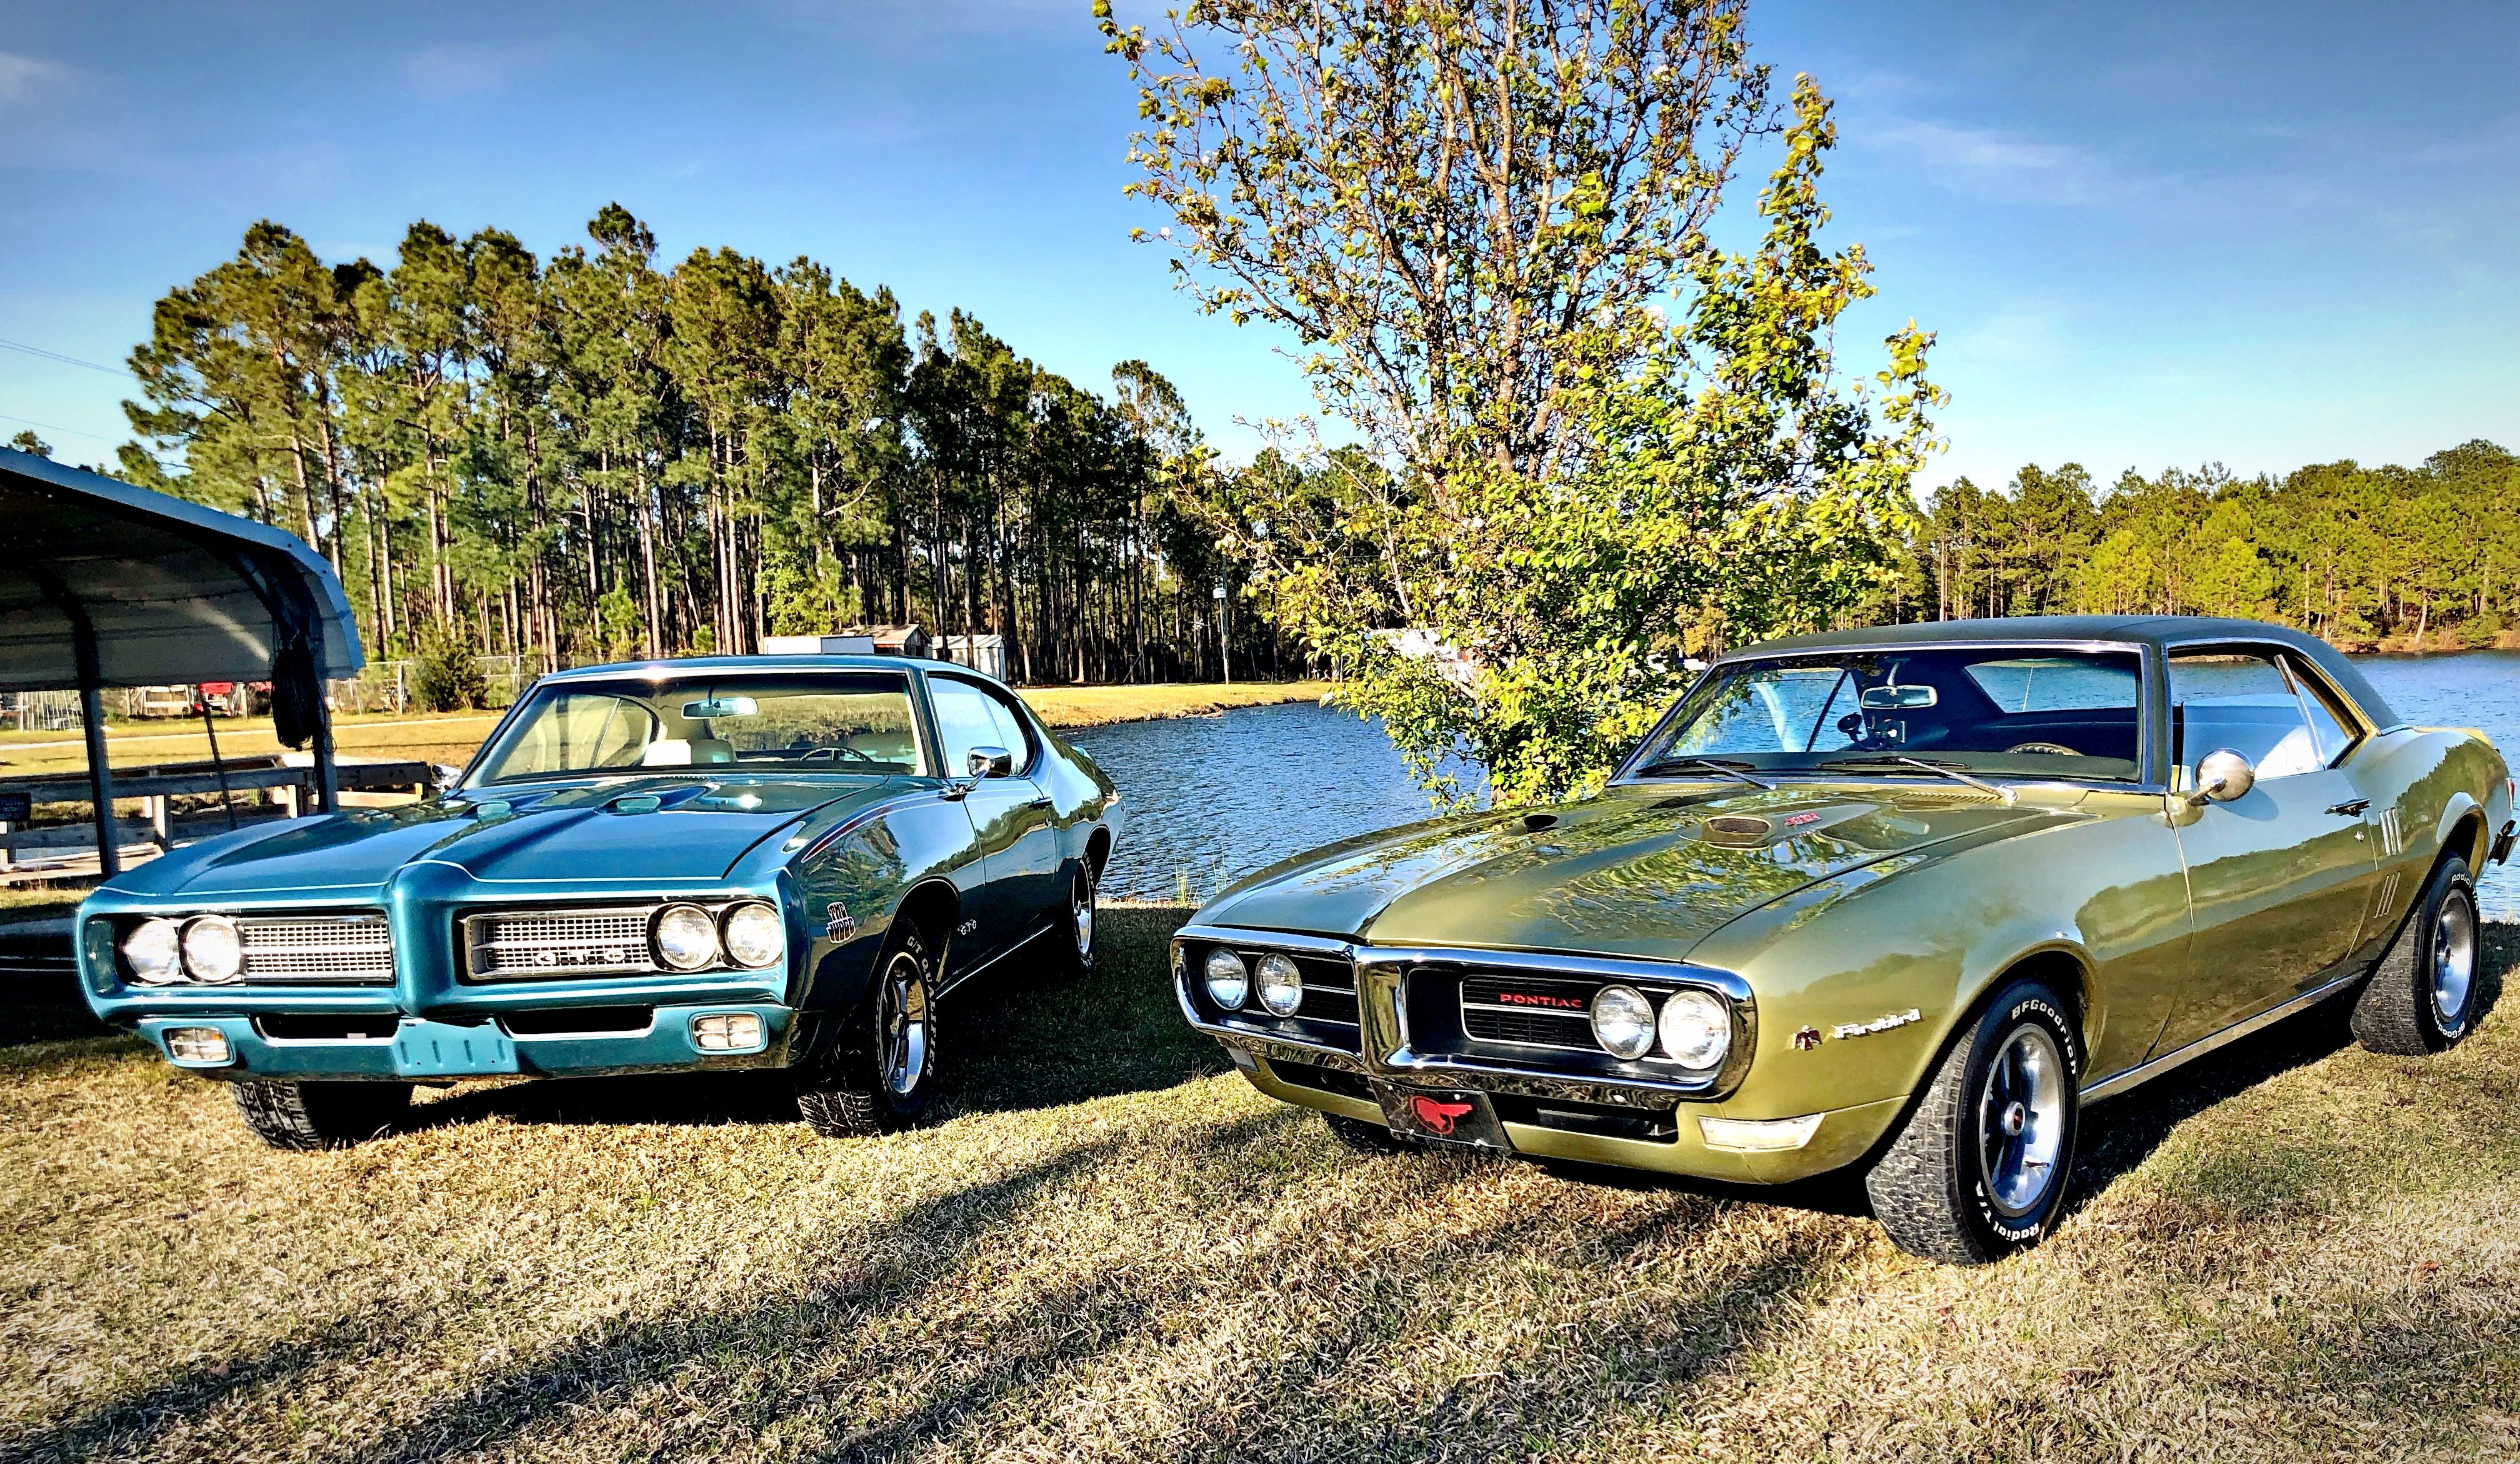 1968 Pontiac Firebird and 1969 Pontiac GTO